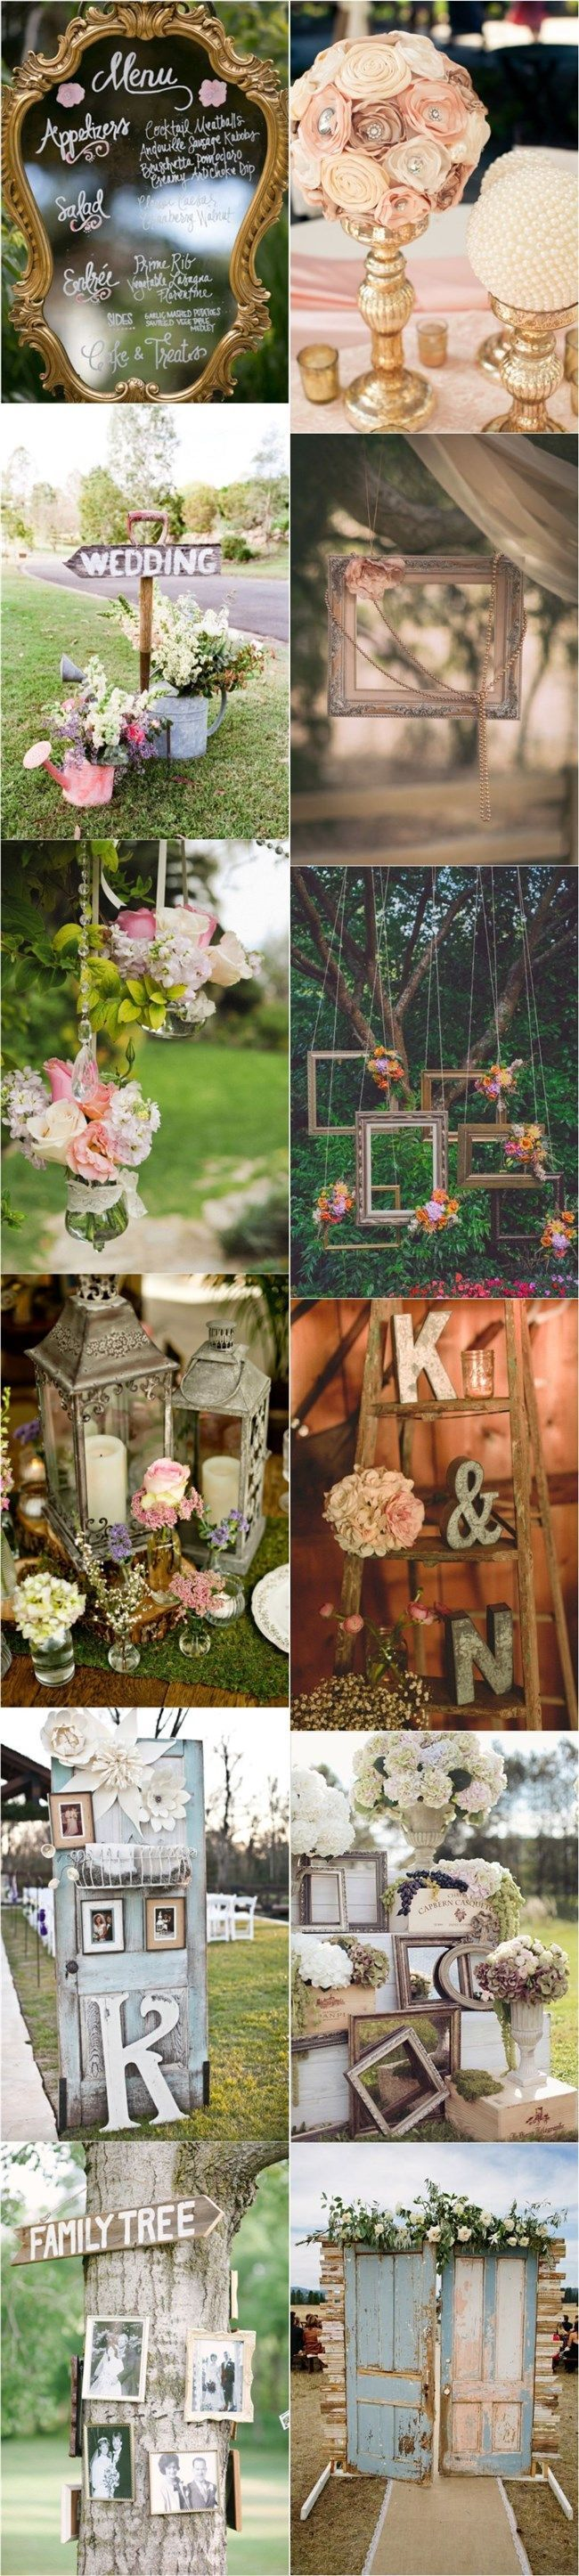 Vintage wedding ideas for decorating pictures